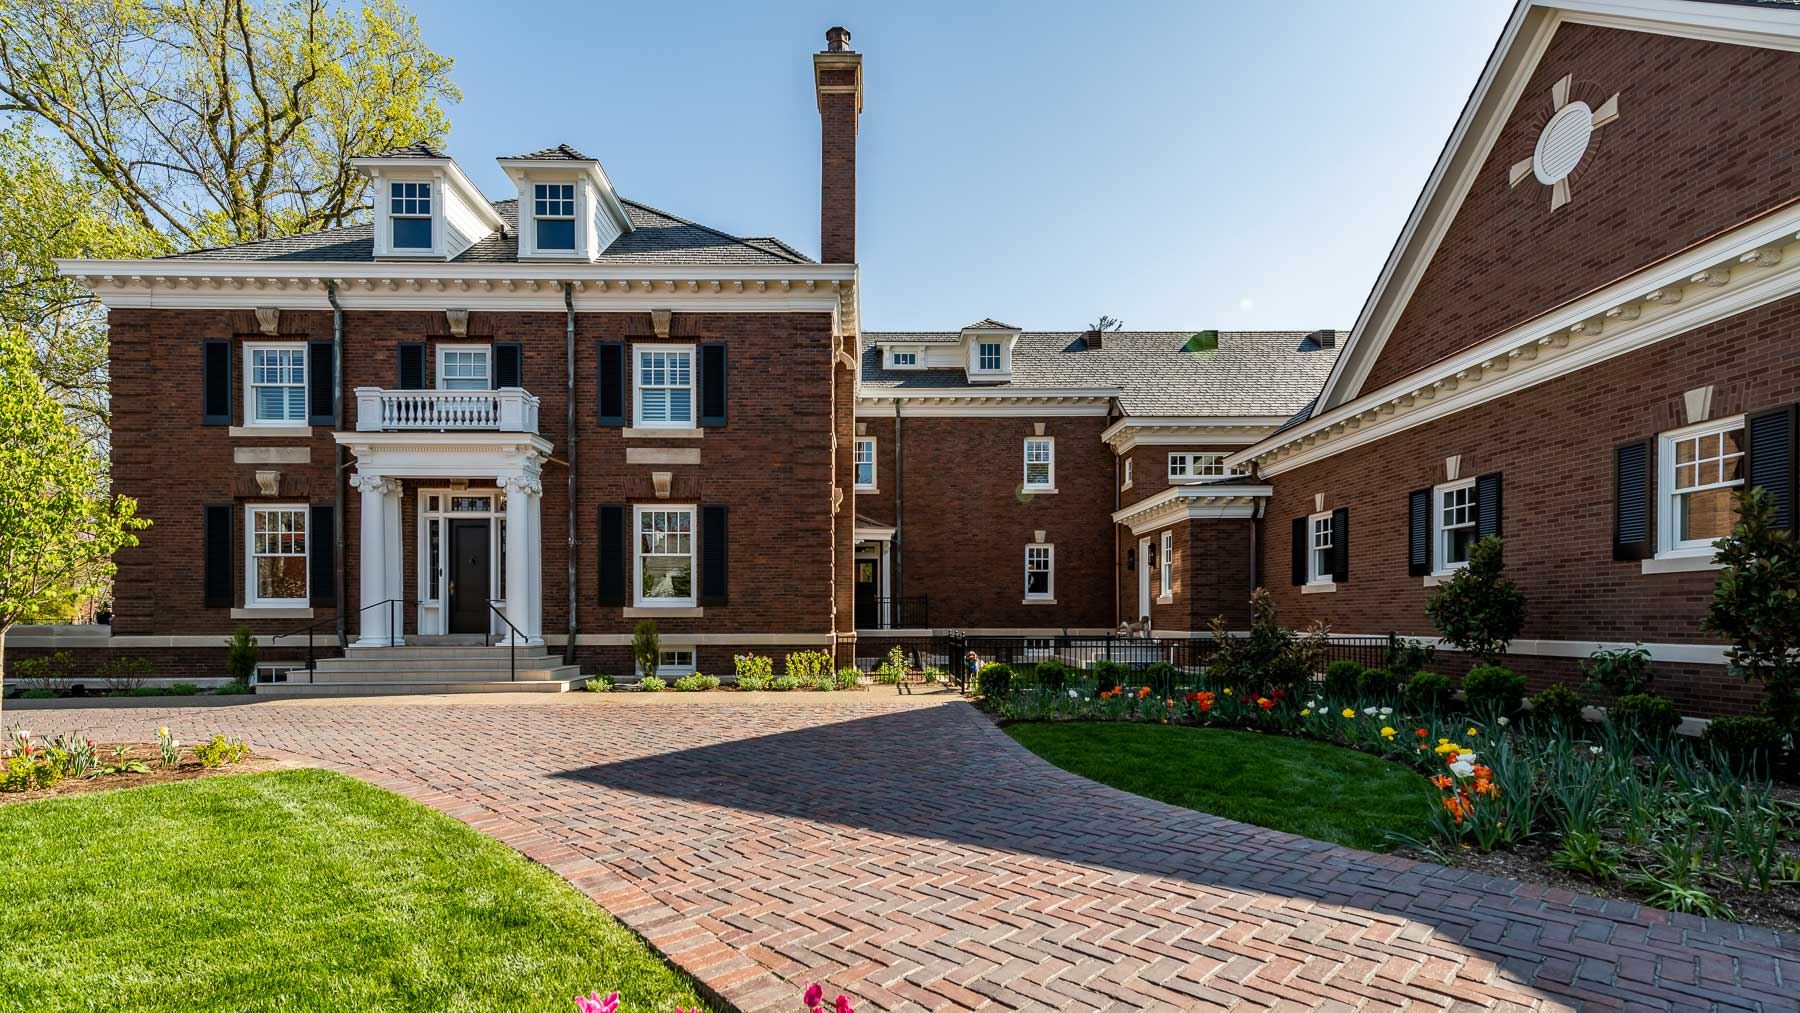 Schaub-Projects-Architecture-Quincy-Illinois-Historic-Preservation-3-wide